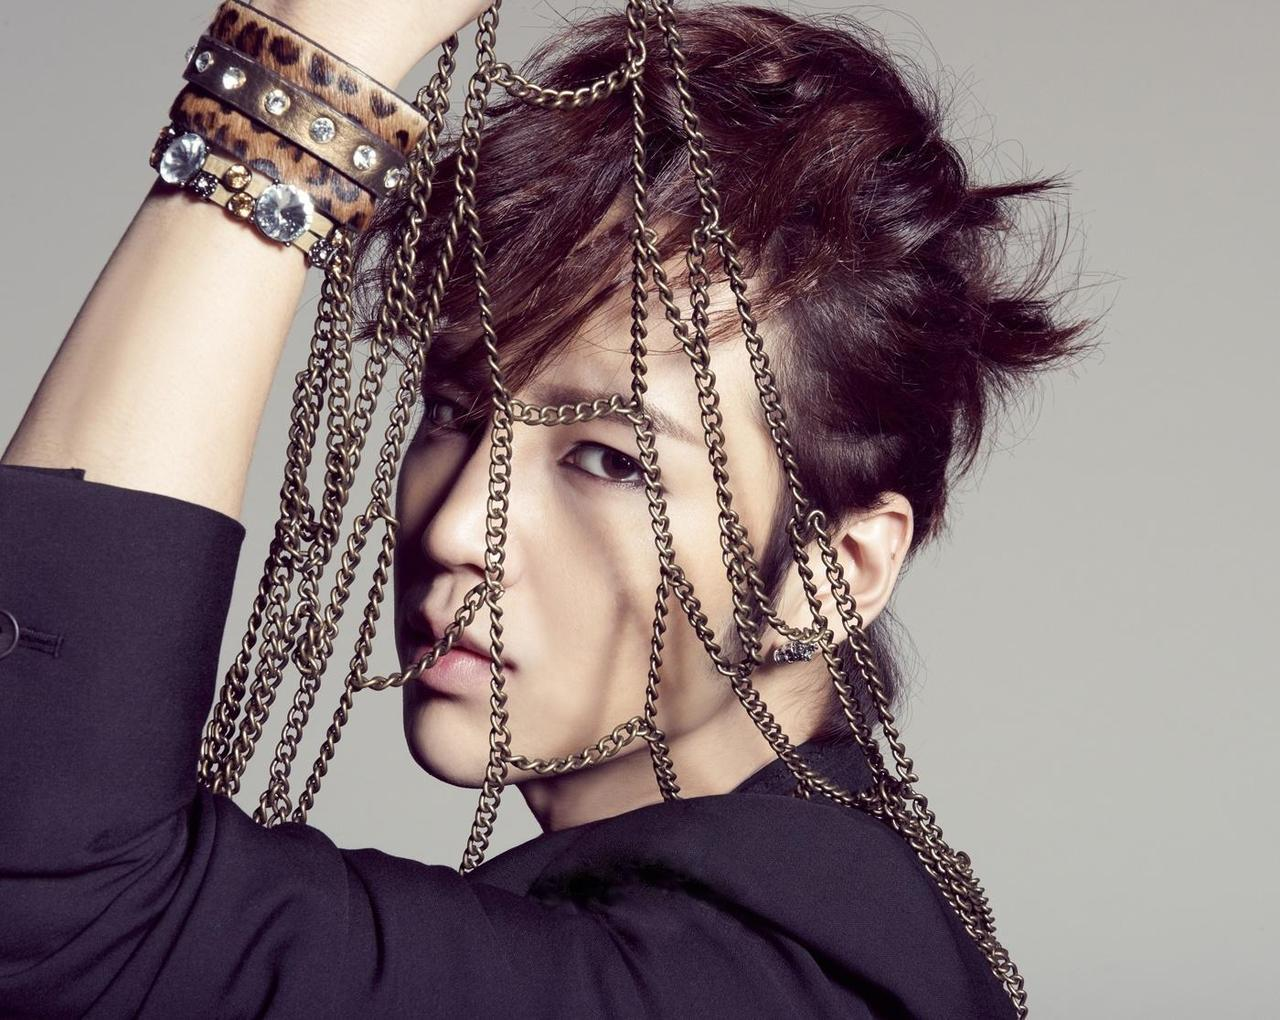 Production Cost of Jang Geun Suk's Upcoming Tour Made Public